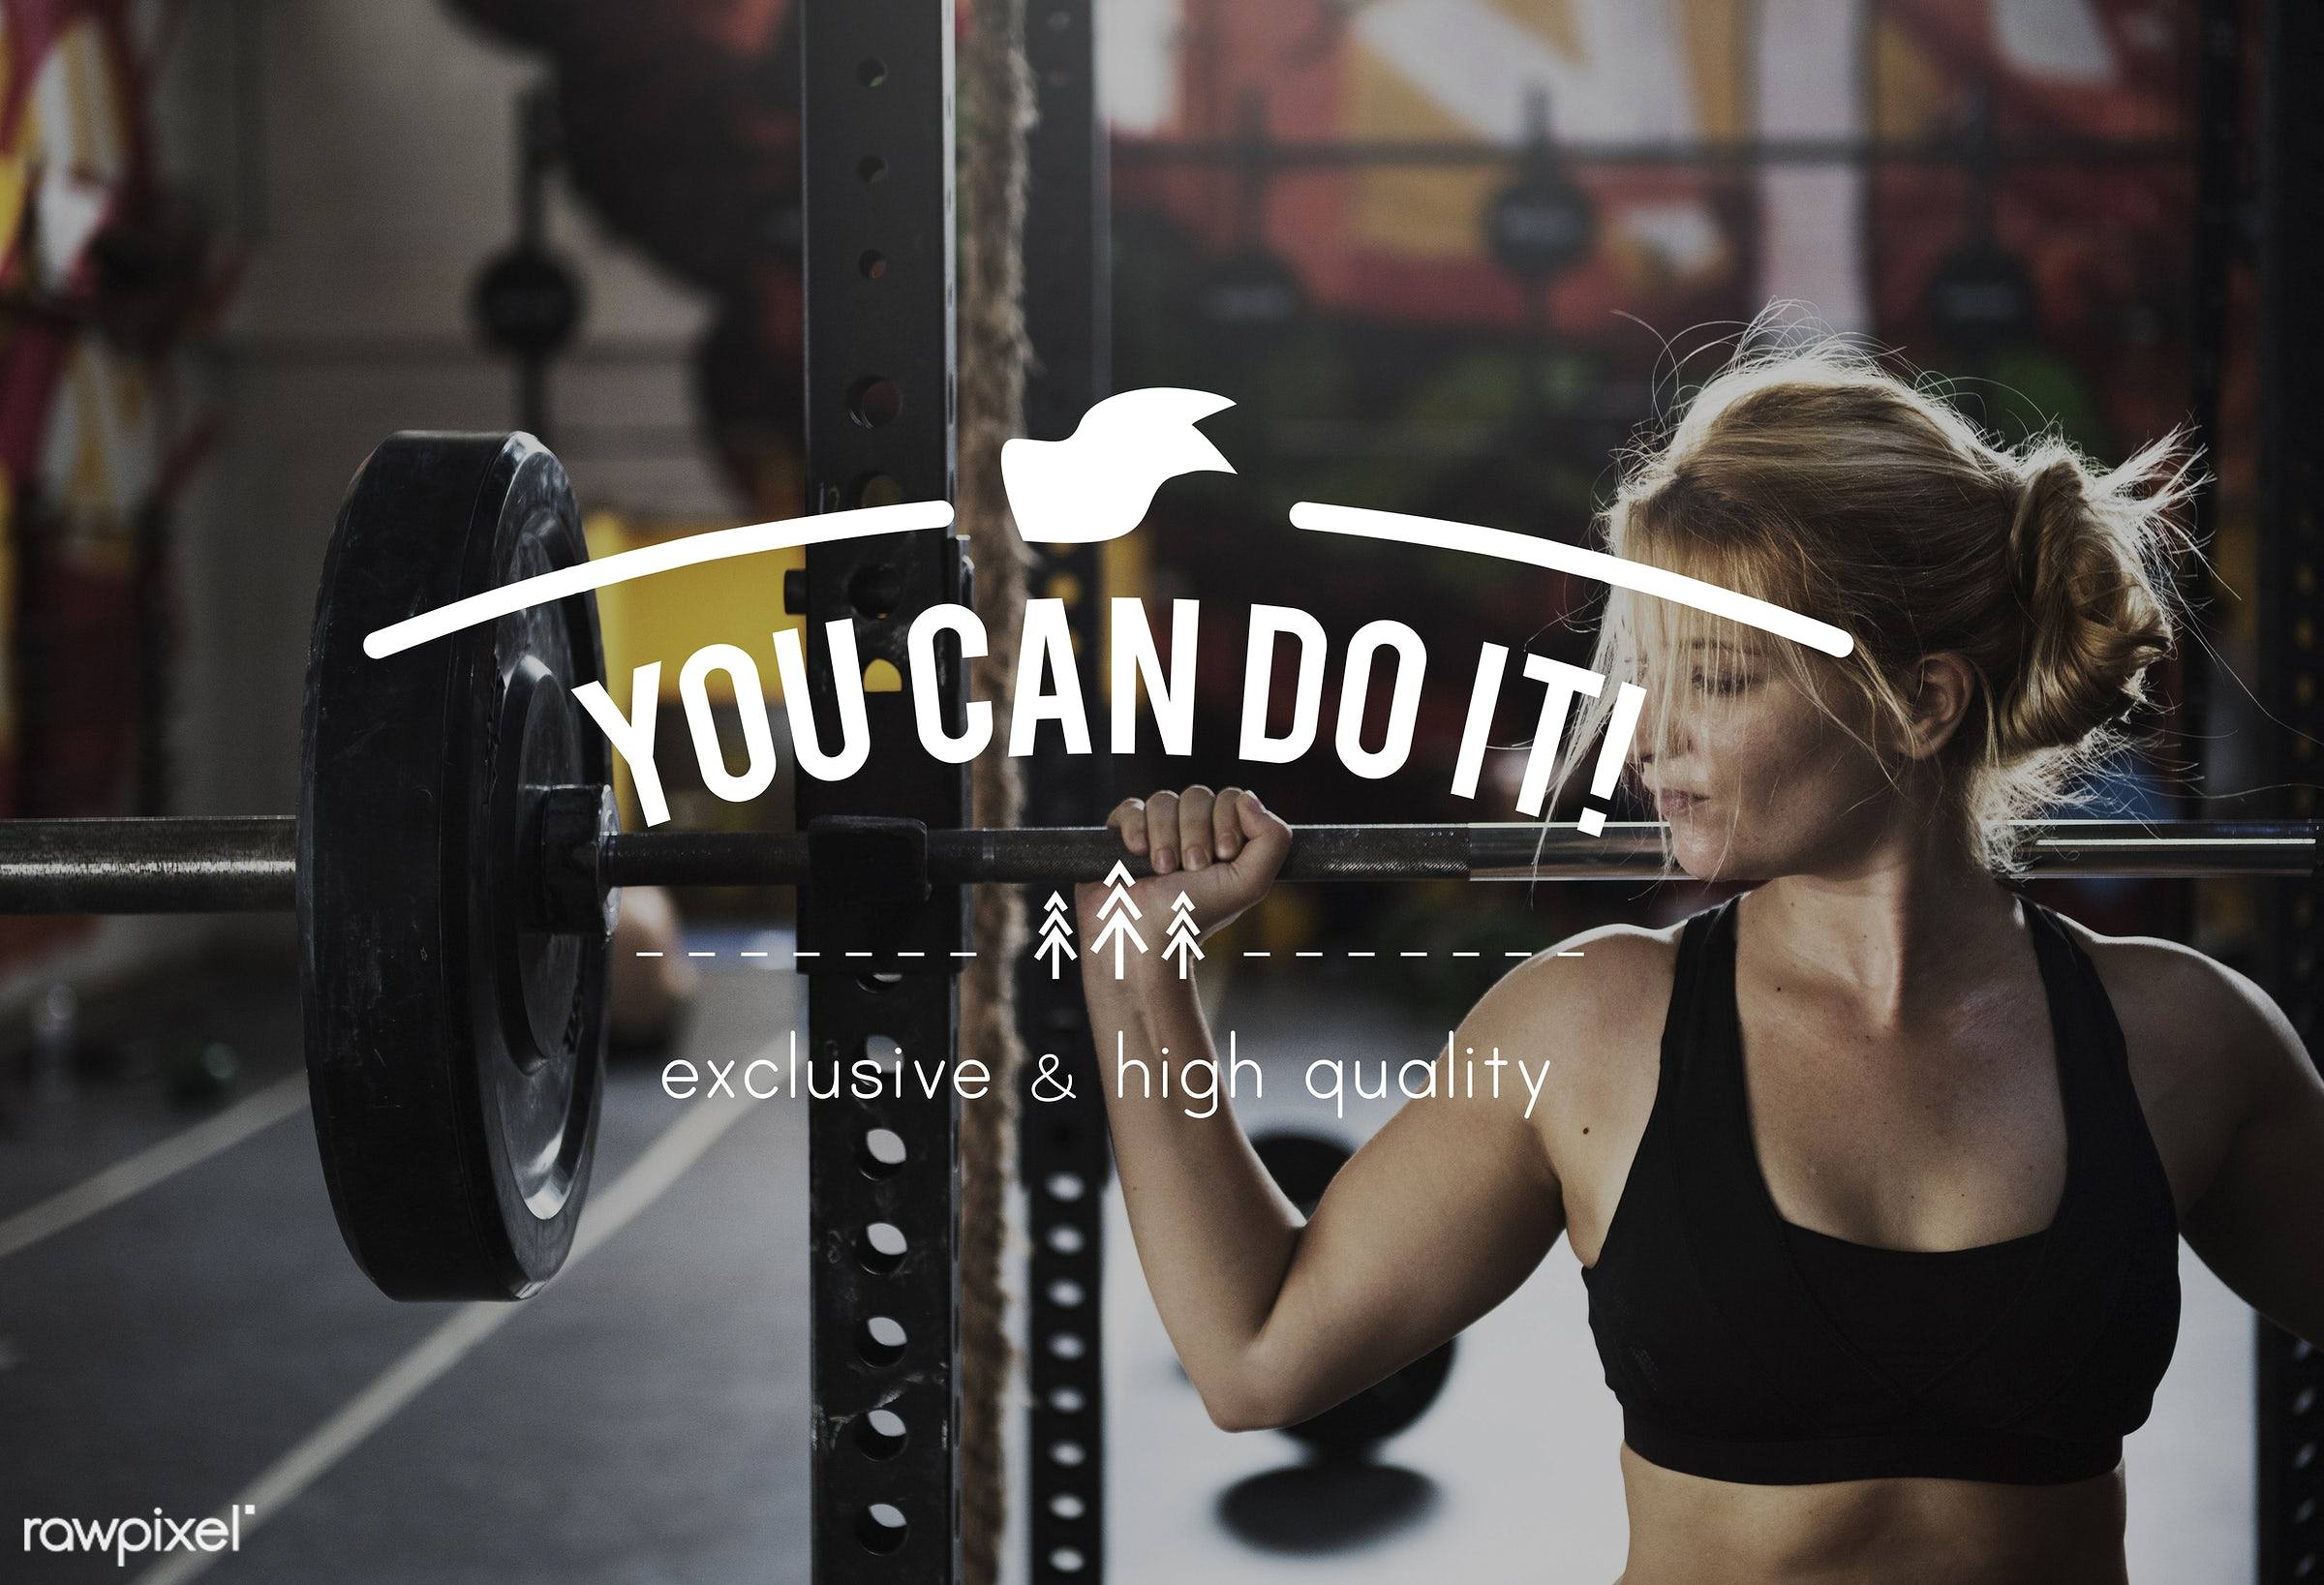 fitness, wellness, barbell, be strong, black, black people, blonde, body challenge, body matters, build a body, build your...